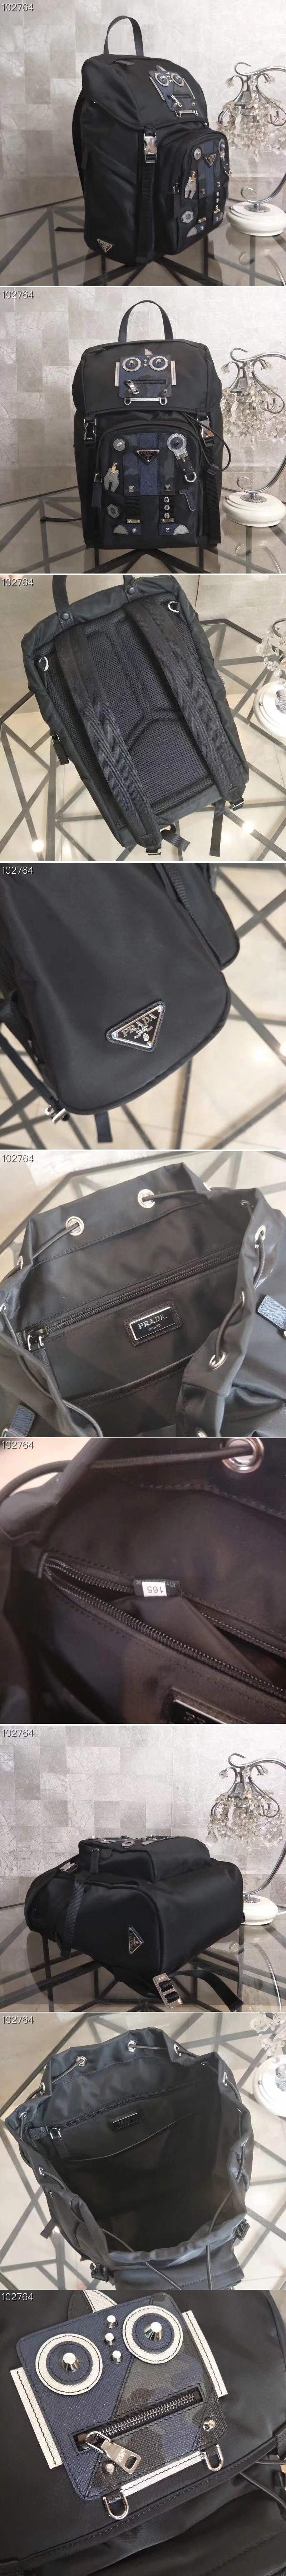 Replica Prada 2VZ135 Technical fabric backpack With Robat